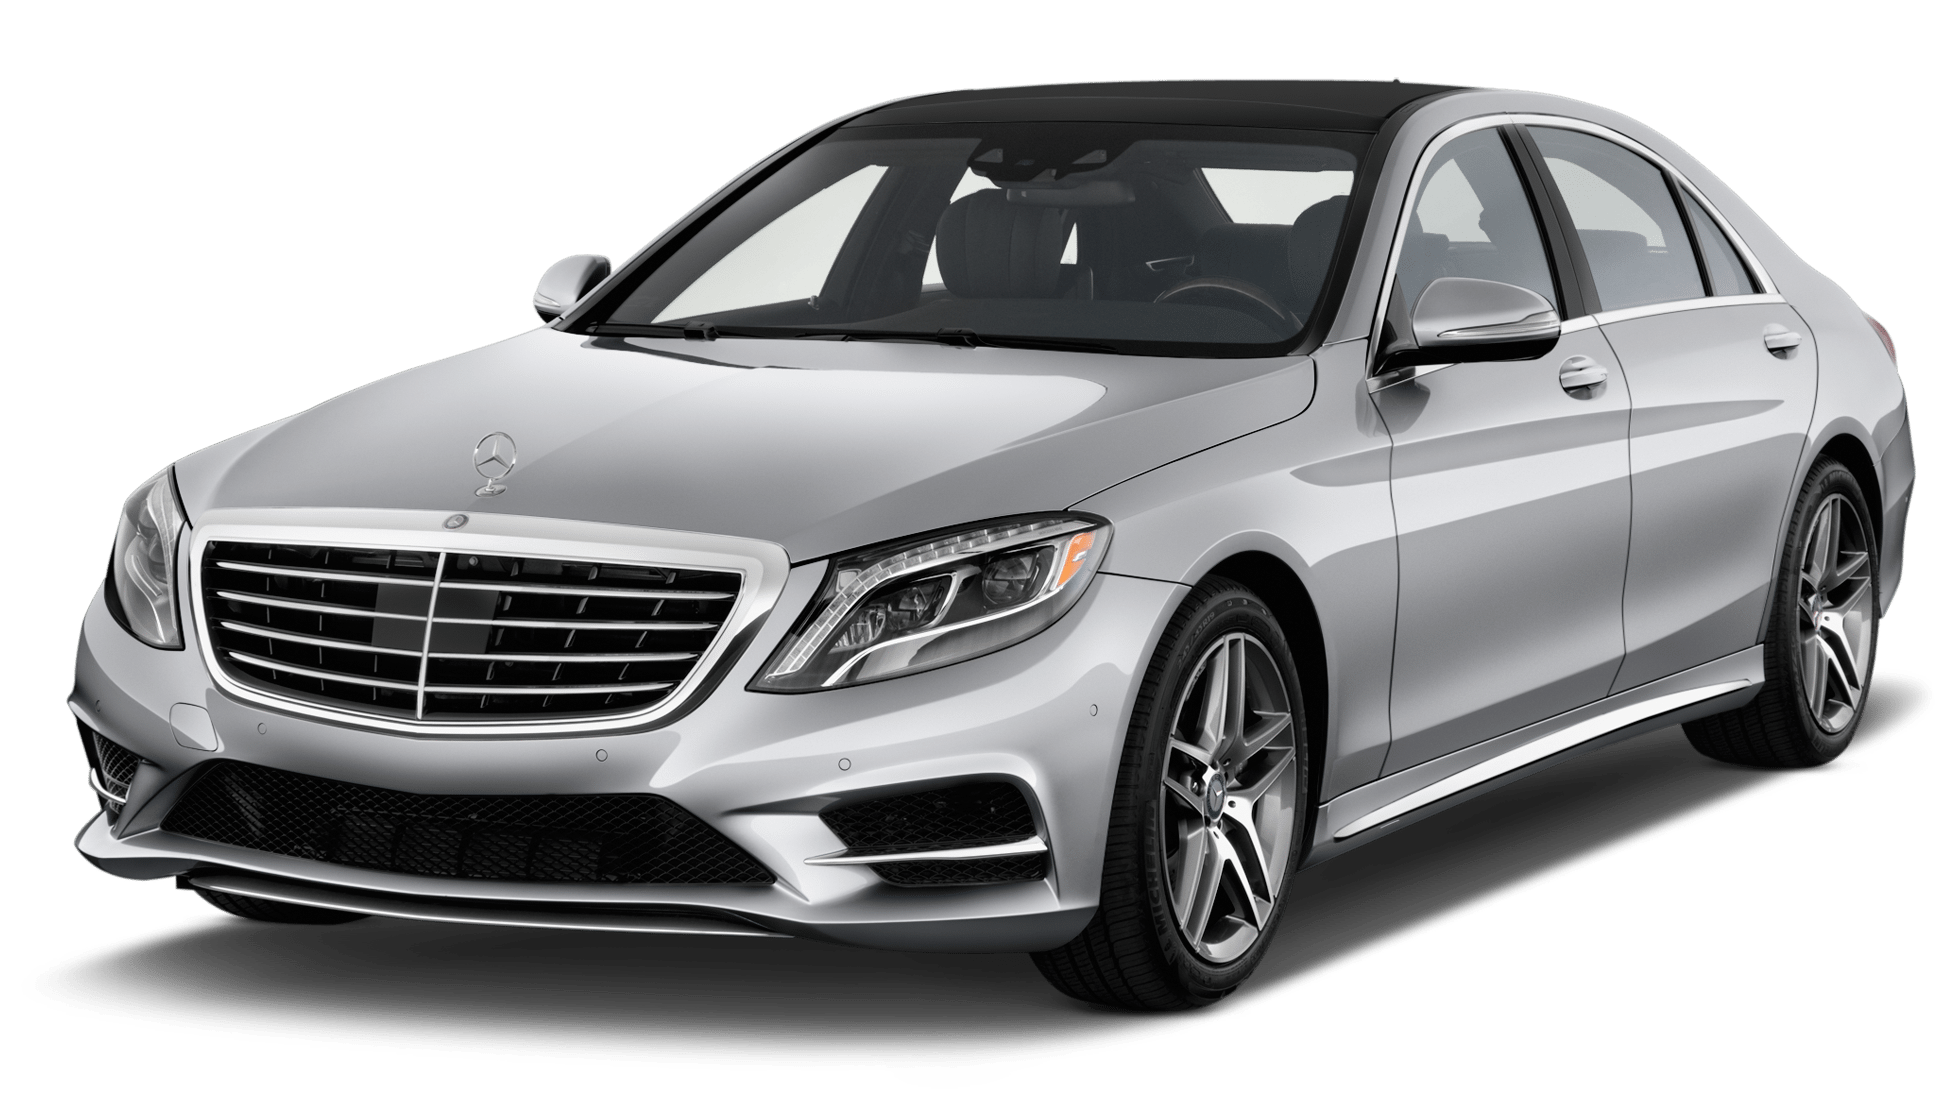 2018 Mercedes-Benz S-Class Maybach Prices & Specifications ...